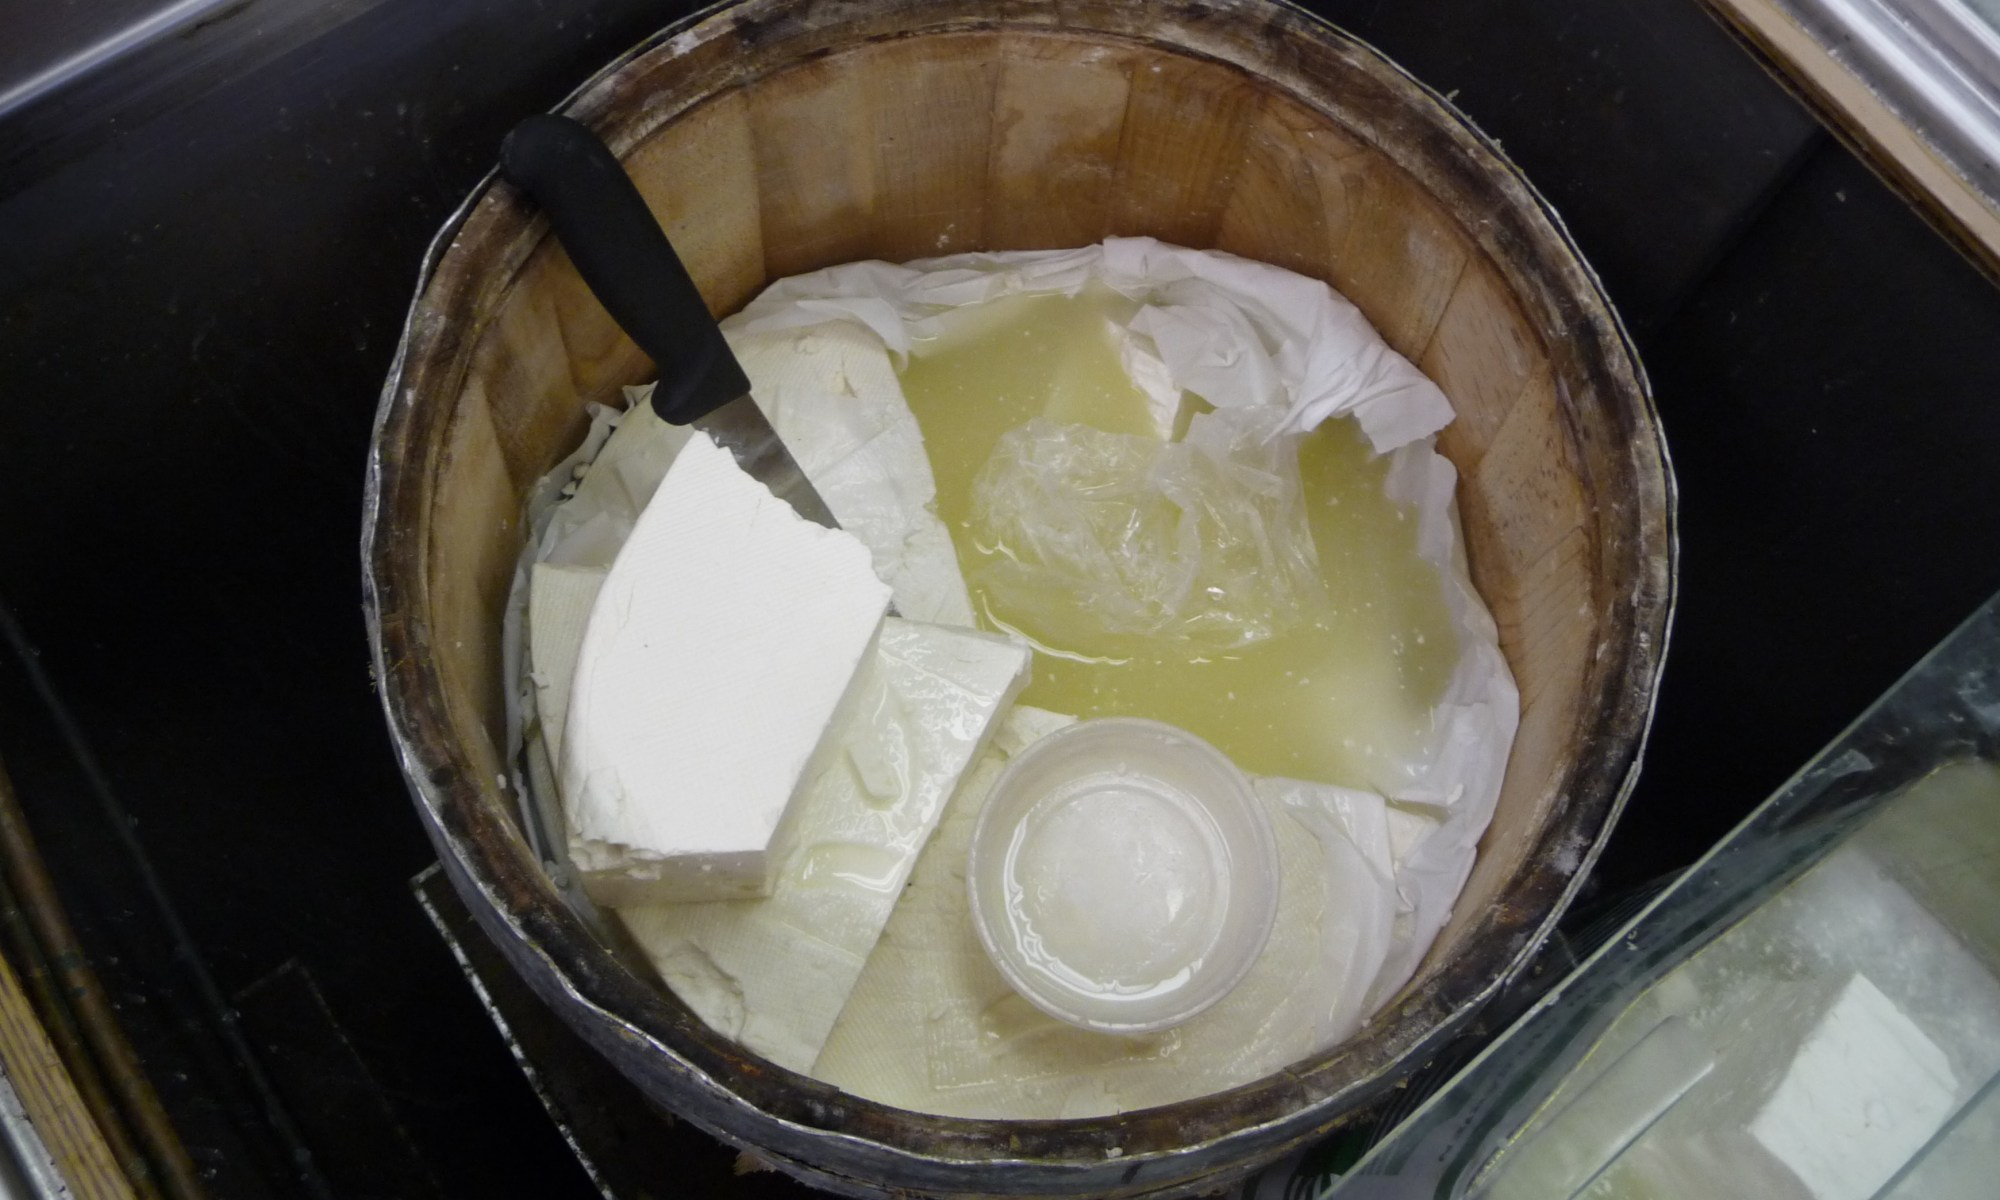 Mediterranean Store, Vancouver Canada, barrel of Feta in brine without cover.